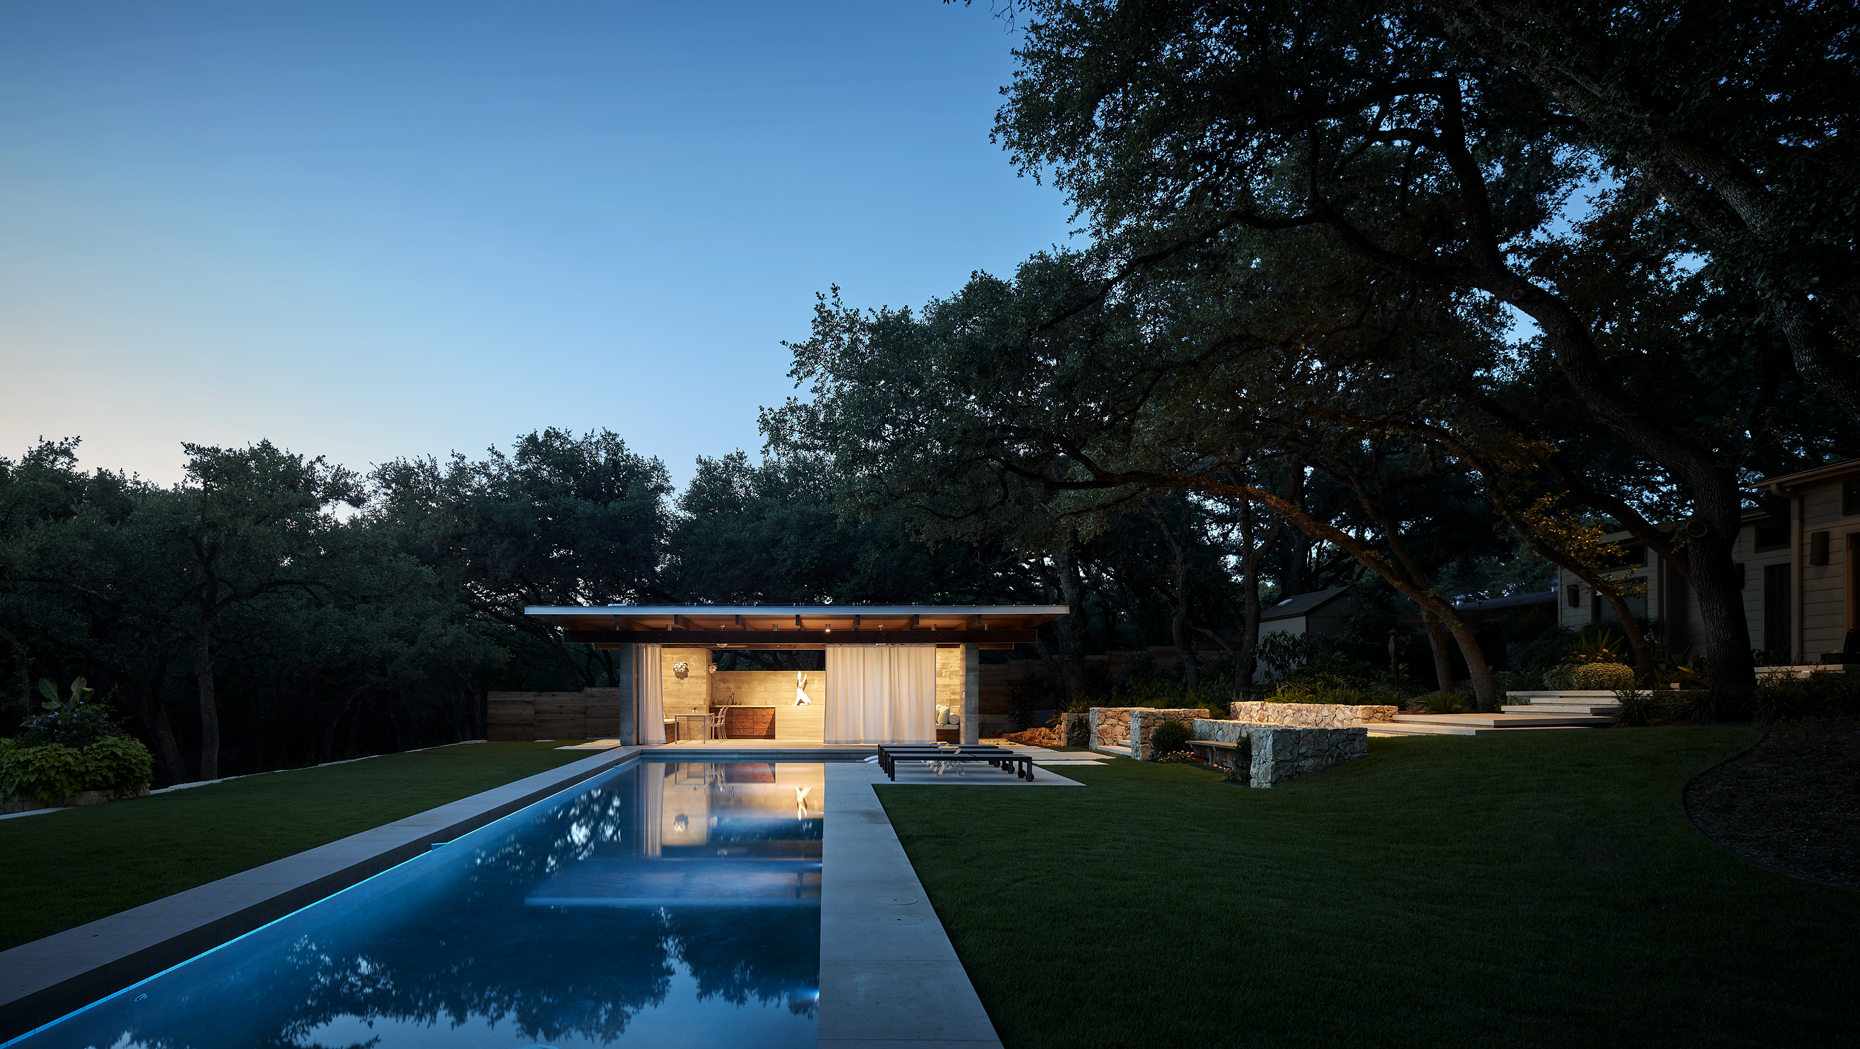 dror baldinger faia architectural photography concrete poolhouse